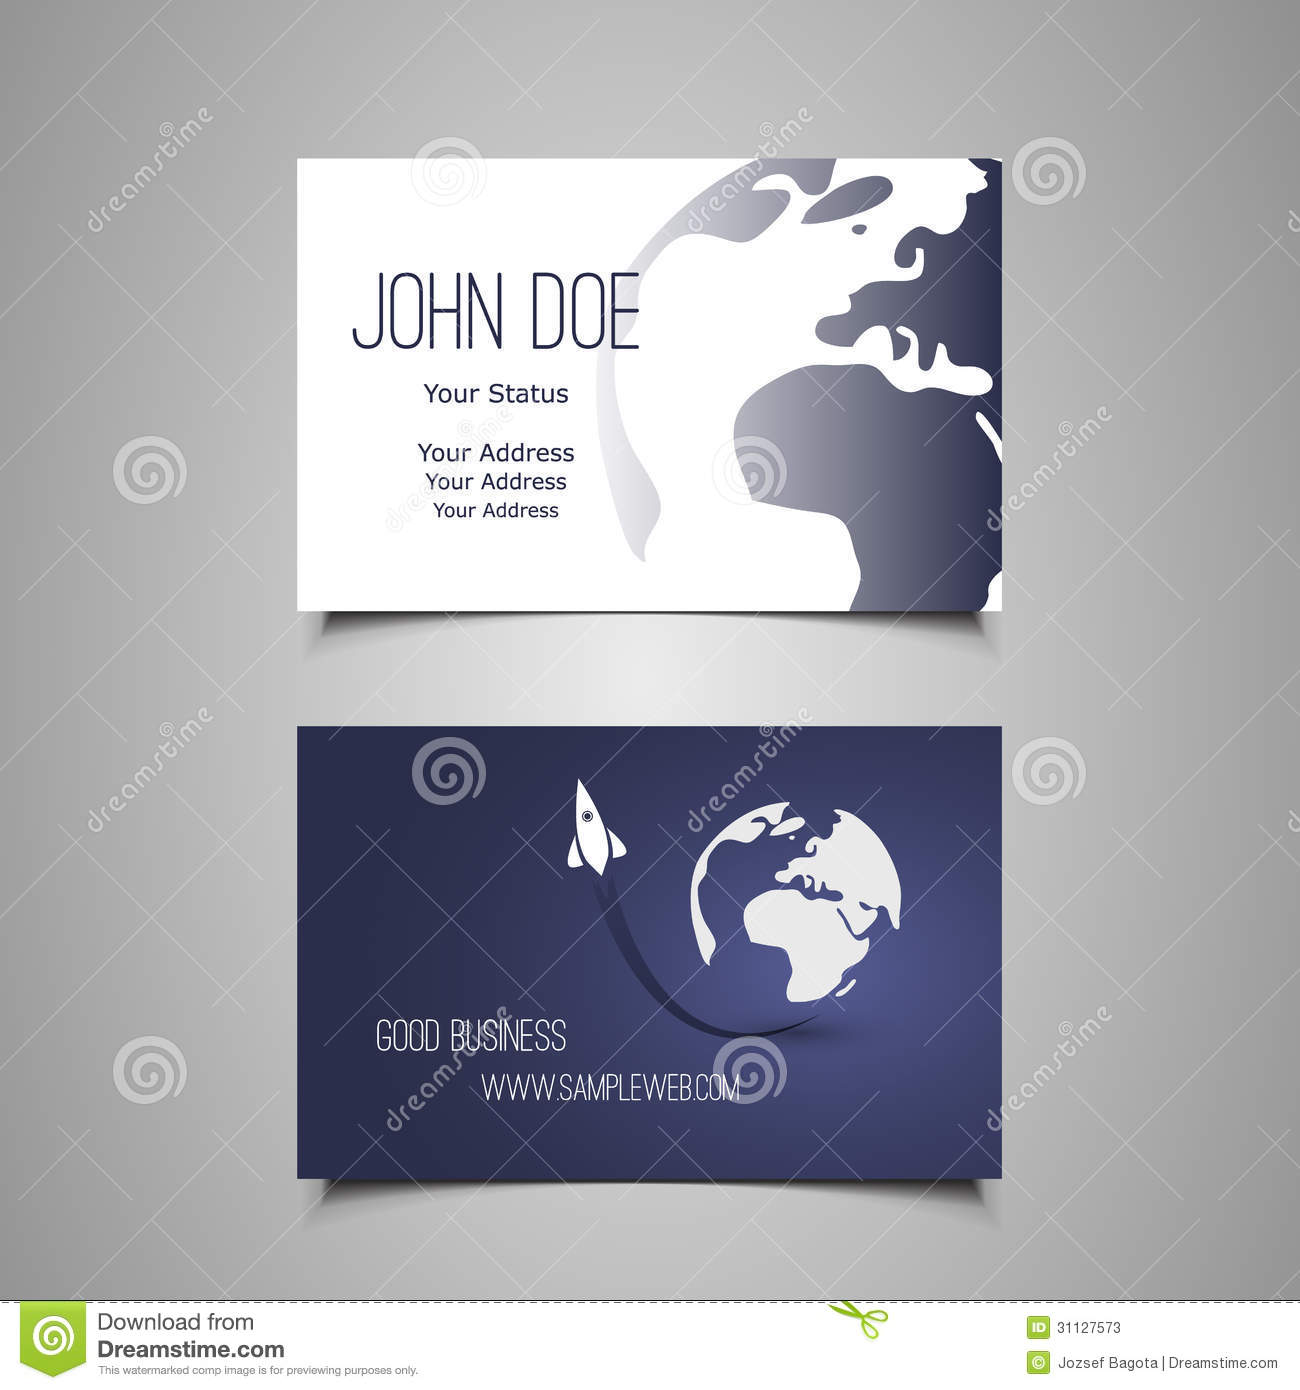 Business Card Template Stock s Image